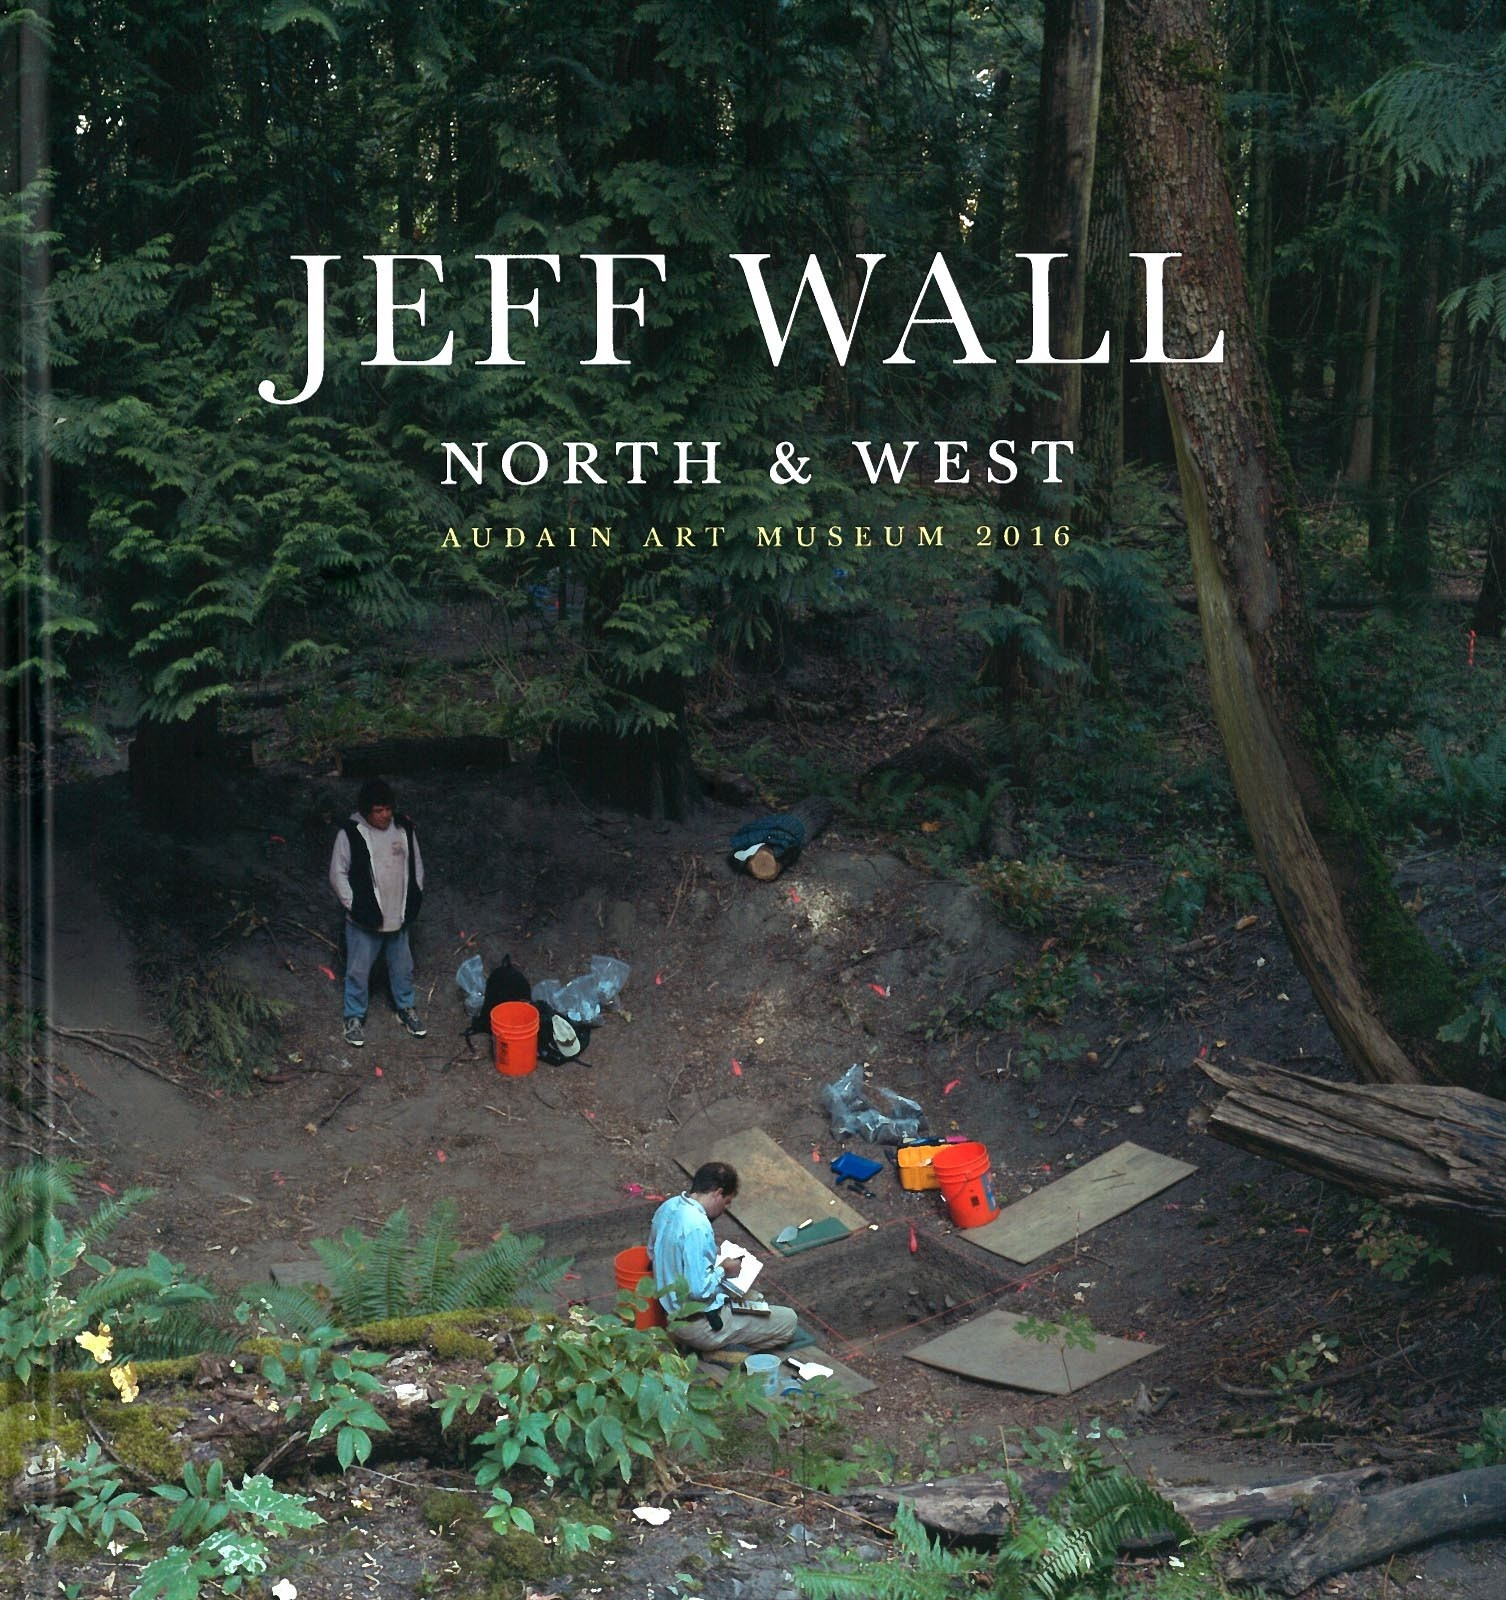 North & West - Jeff Wall